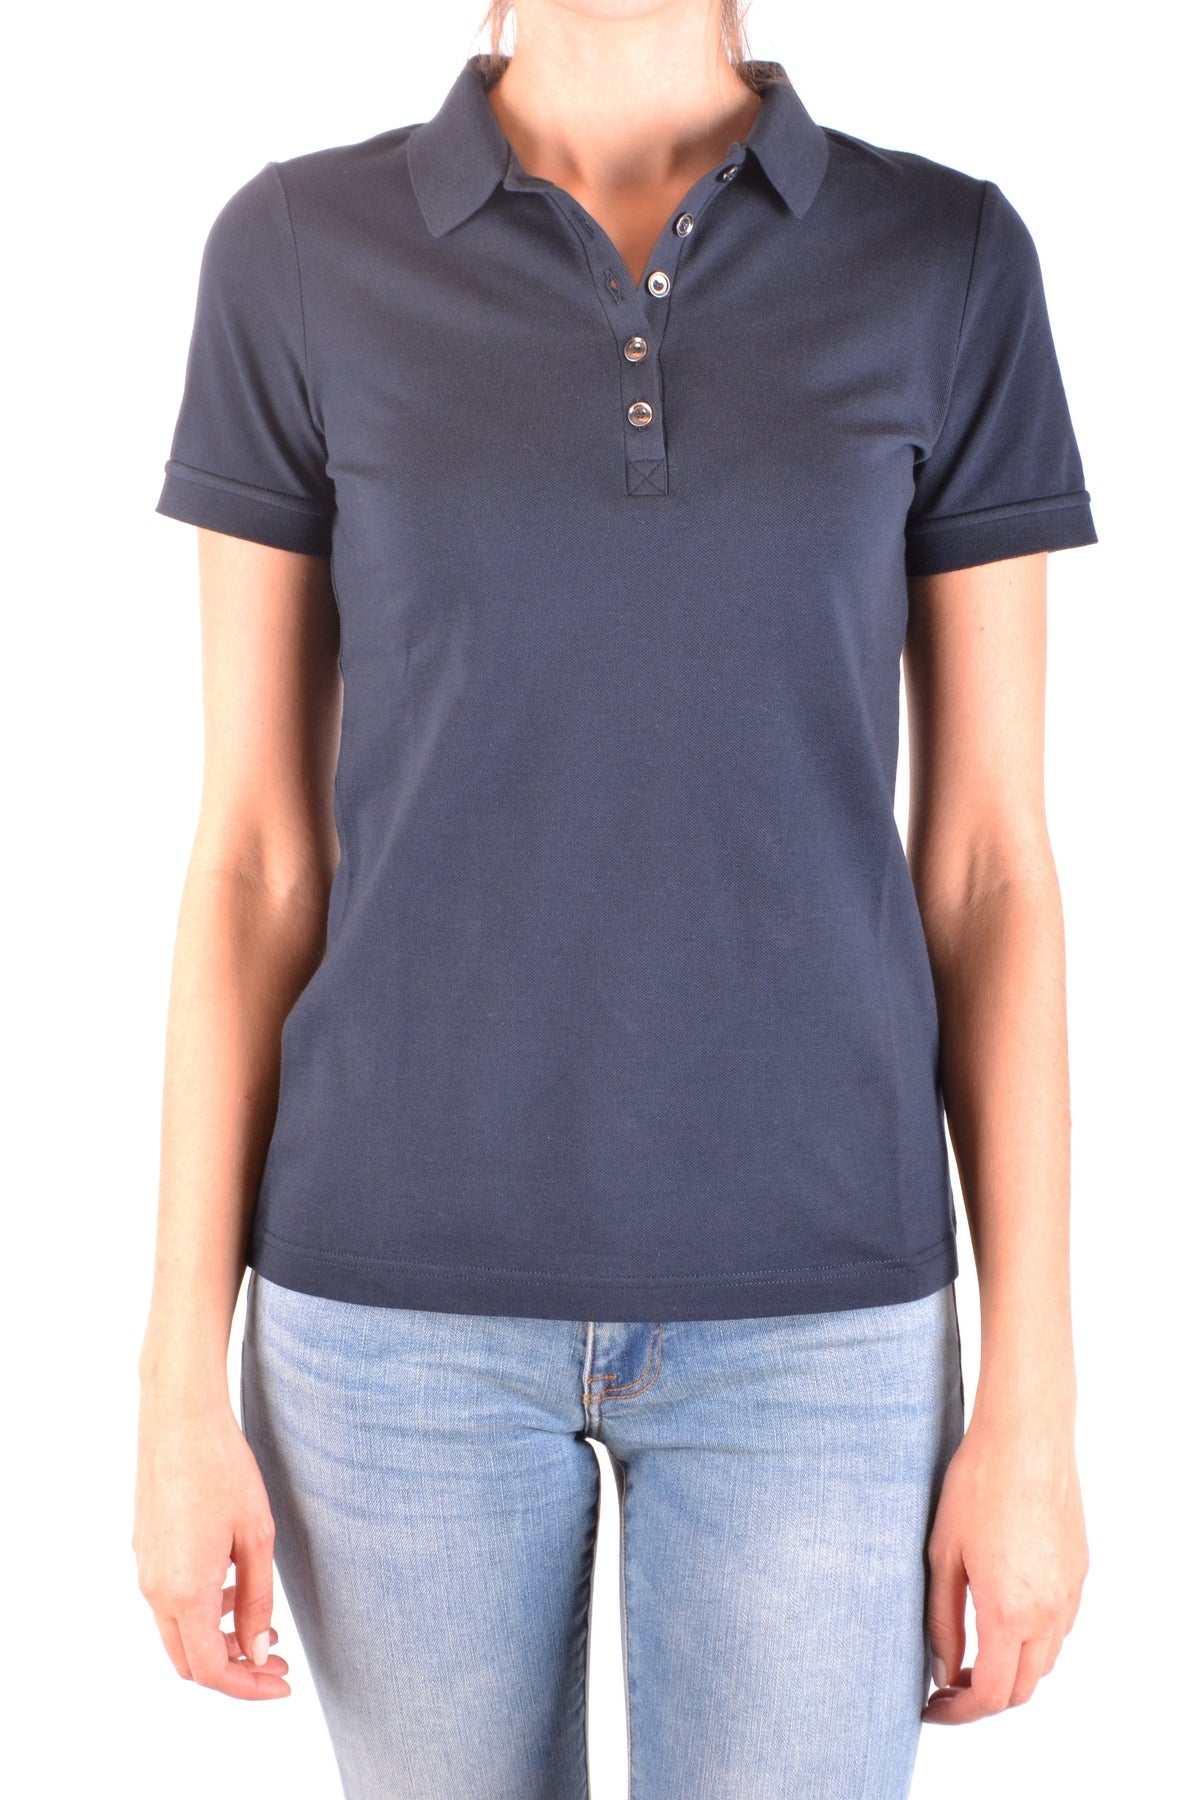 Polo Burberry-Polos - WOMAN-XS-Product Details Season: Spring / SummerTerms: New With LabelMain Color: BlueGender: WomanMade In: TurkeyManufacturer Part Number: 4001661 1003Size: IntYear: 2018Clothing Type: PoleComposition: Cotton 98%, Elastane 2%-Keyomi-Sook